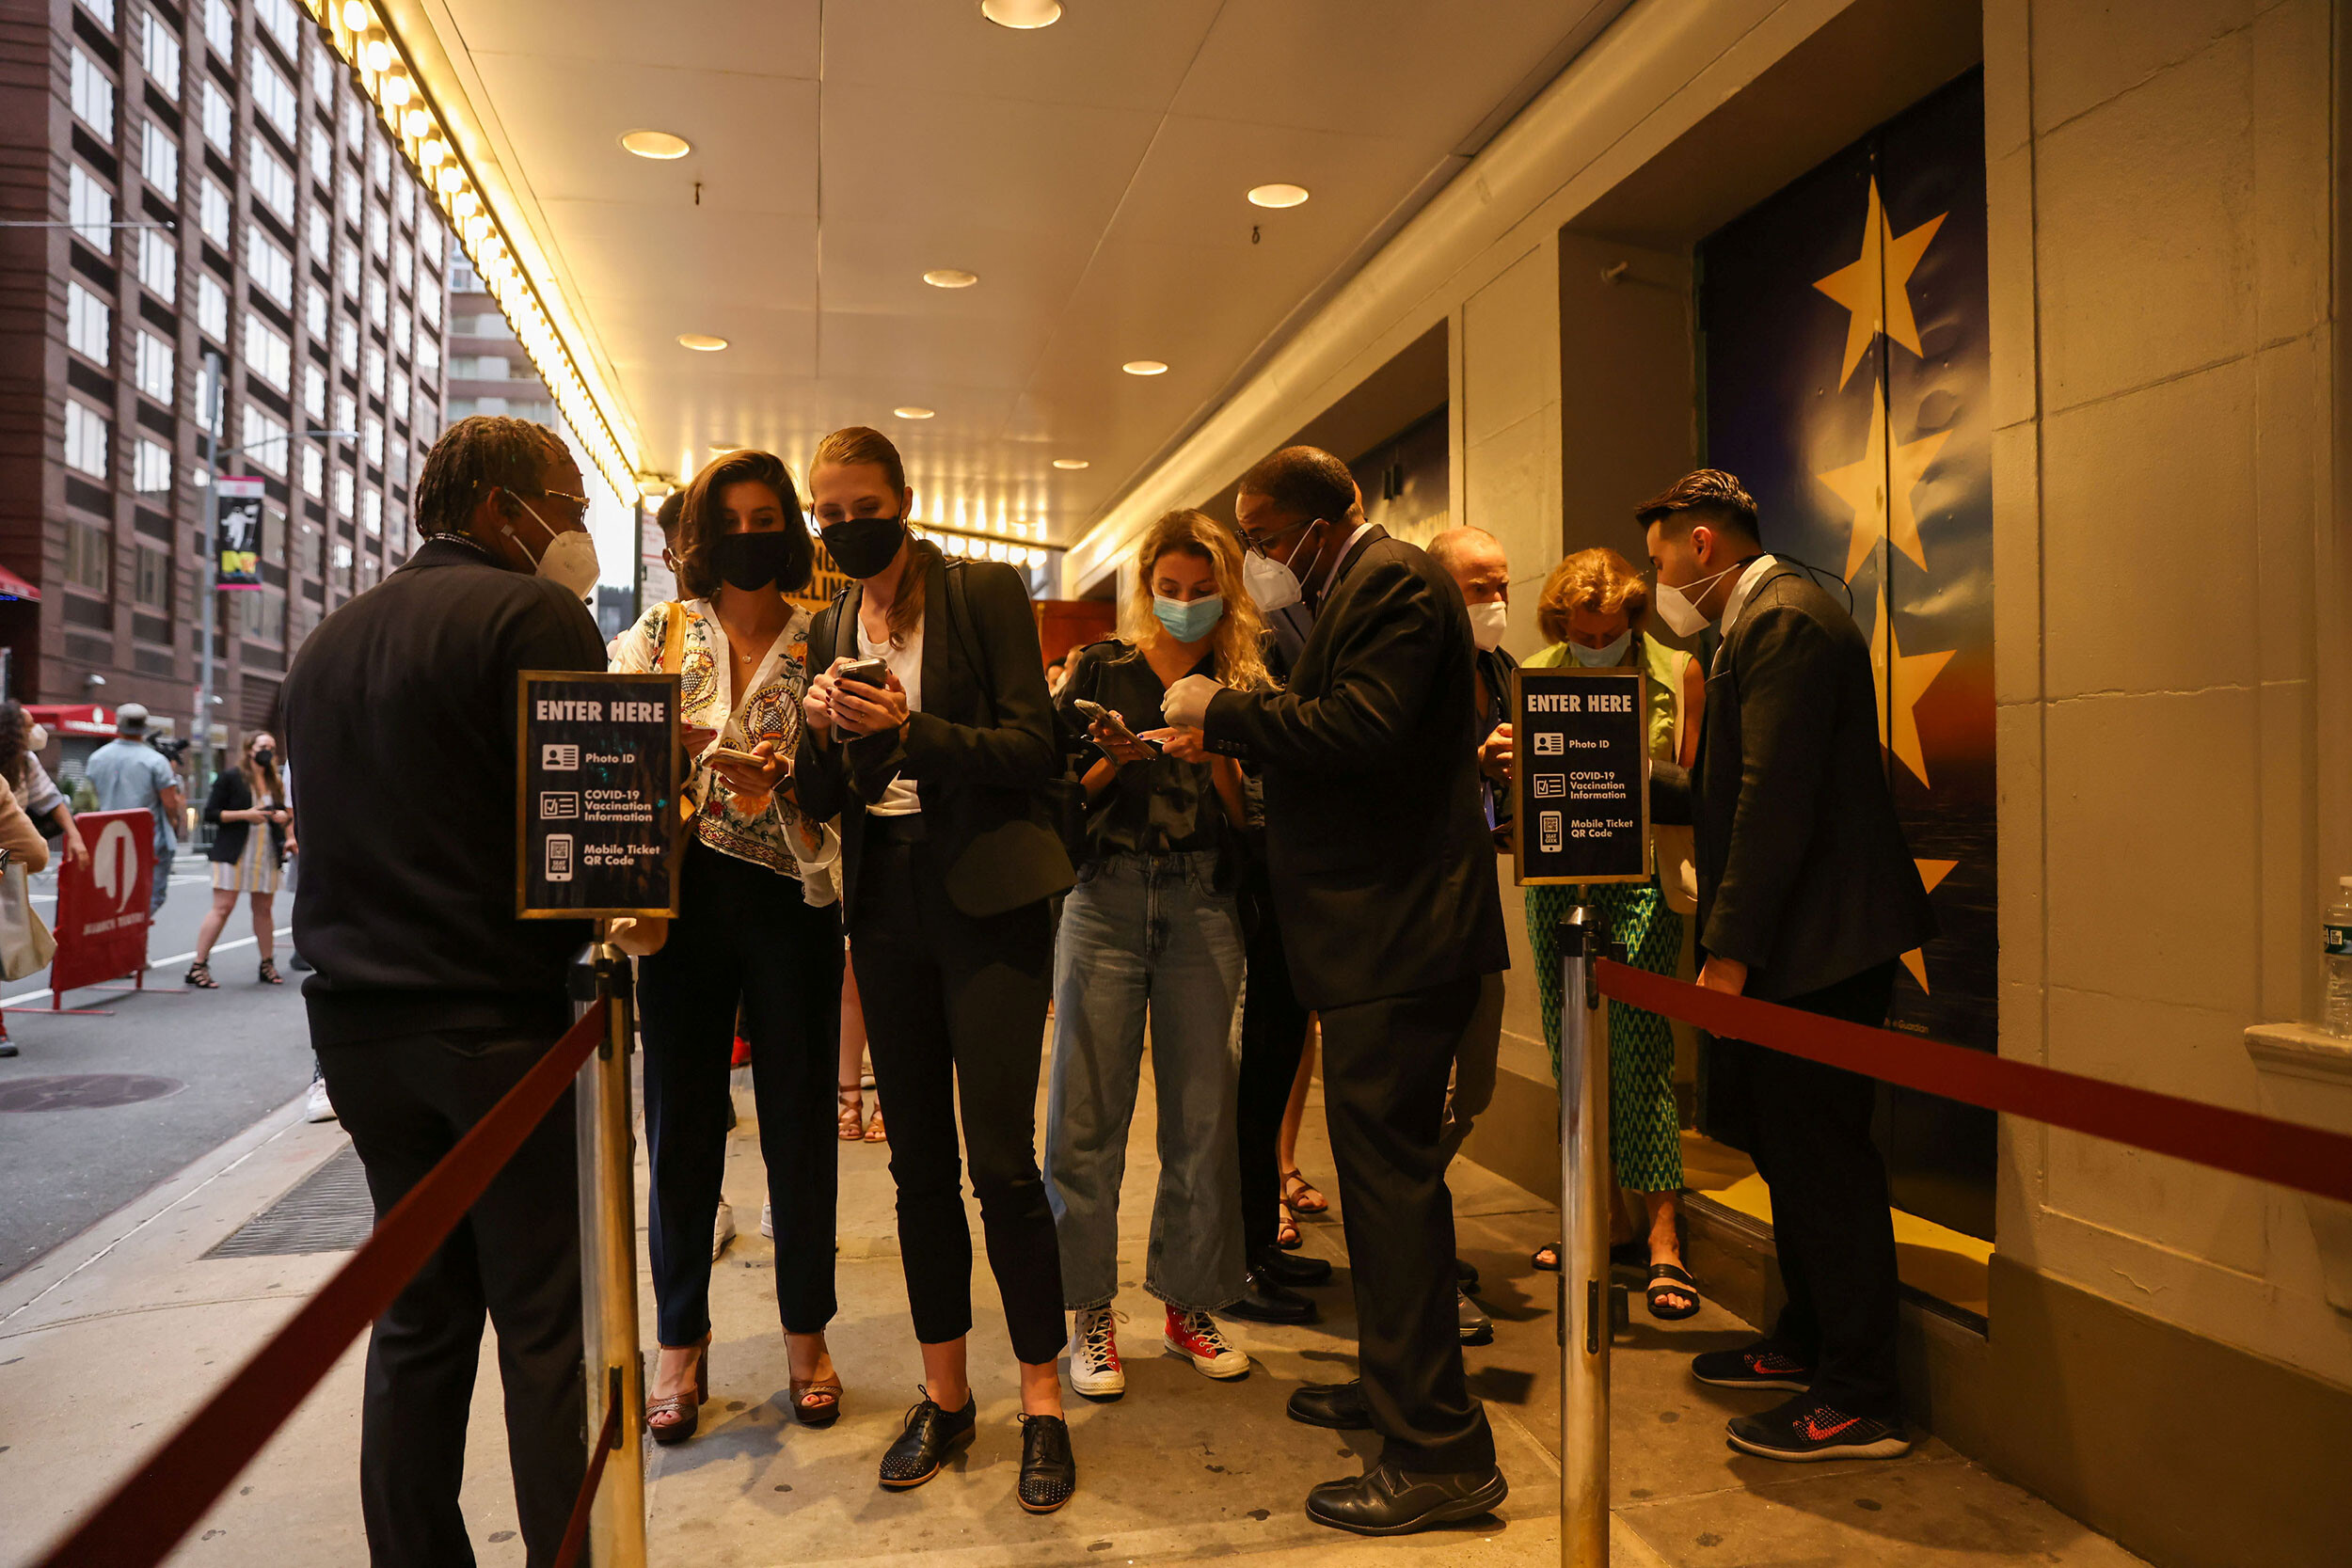 <i>Caitlin Ochs/Reuters</i><br/>Guests have their vaccine cards and identification checked before entering the theatre at the opening night of previews for